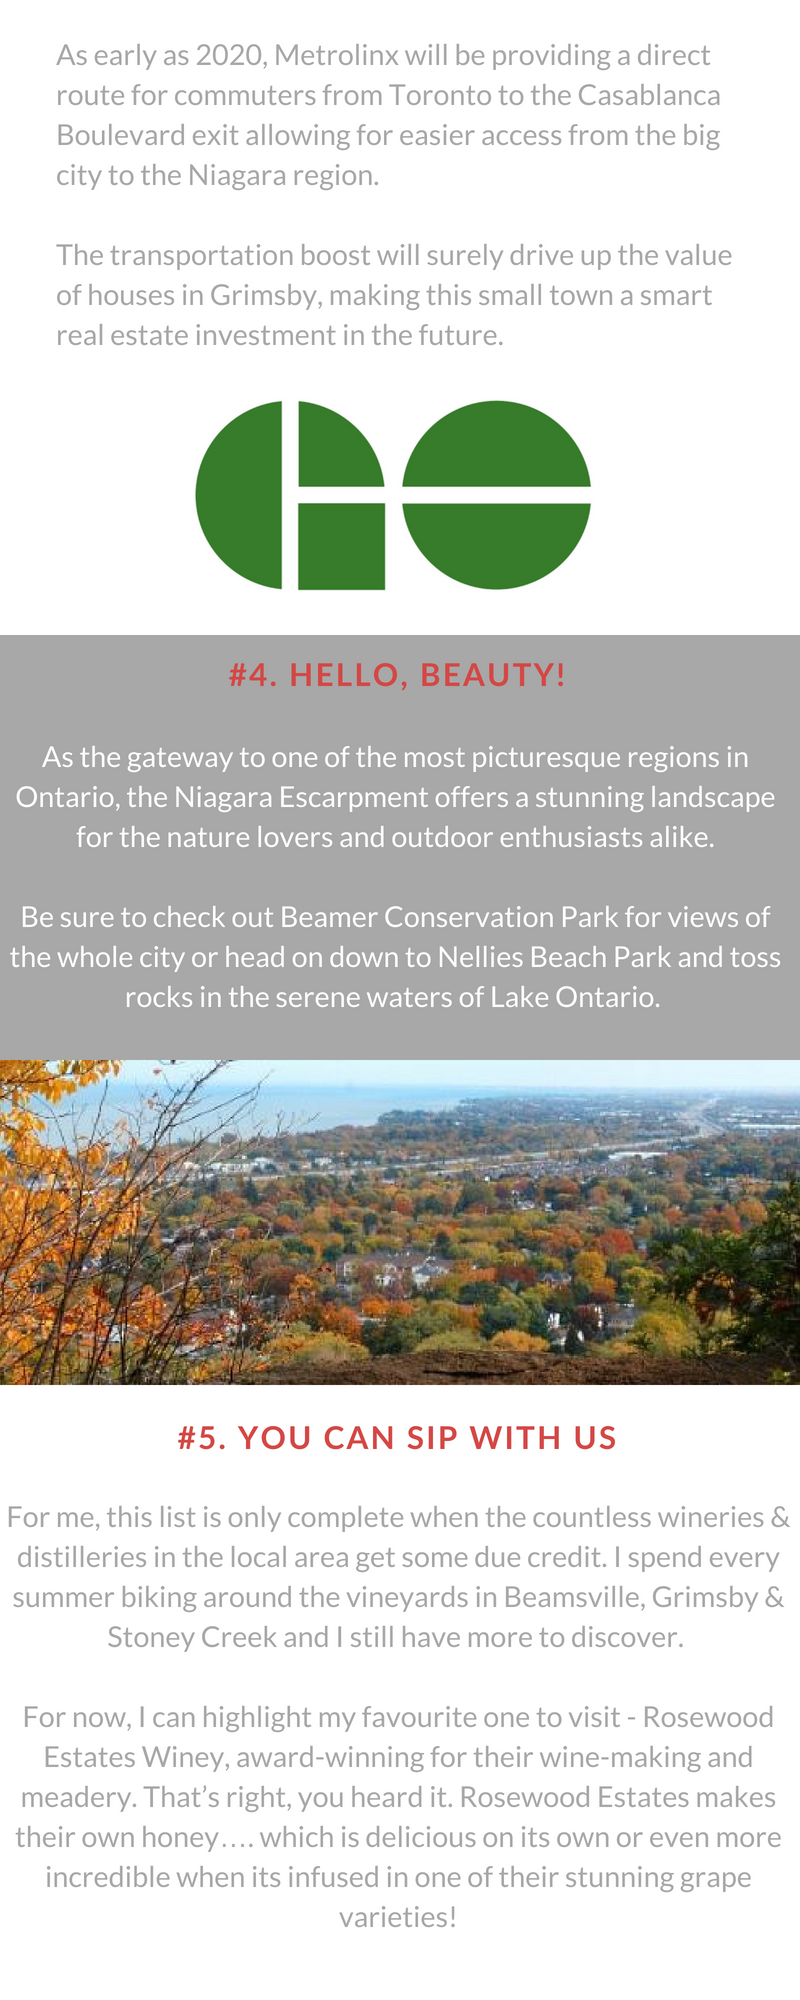 #3.  Hello, Beauty!  As the gateway to one of the most picturesque regions in Ontario, the Niagara Escarpment offers a stunning landscape for the nature lovers and outdoor enthusiasts alike.  Be sure to check out Beamer Conservation Park for views of the whole city or head on down to Nellies Beach Park and toss rocks in the serene waters of Lake Ontario.    #4.  GoRail Coming Soon  As early as 2020, Metrolinx will be providing a direct route for commuters from Toronto to the Casablanca Boulevard exit allowing for easier access from the big city to the Niagara region.   The transportation boost will surely drive up the value of houses in Grimsby, making this small town a smart real estate investment in the future.   #5.  You Can Sip with Us  For me, this list is only complete when the countless wineries & distilleries in the local area get some due credit. I spend every summer biking around the vineyards in Beamsville, Grimsby & Stoney Creek and I still have more to discover.   For now, I can highlight my favorite one to visit - Rosewood Estates Winey, award-winning for their wine-making and meadery. That's right, you heard it. Rosewood Estates makes their own honey…. which is delicious on its own or even more incredible when its infused in one of their stunning grape varieties!  If you're a fan of whisky, then you're in luck. Right off the service road is Forty Creek Whisky, a distillery establishing itself as a leading crafter of world-class spirits, named after the Forty Mile Creek running through the centre of the town.